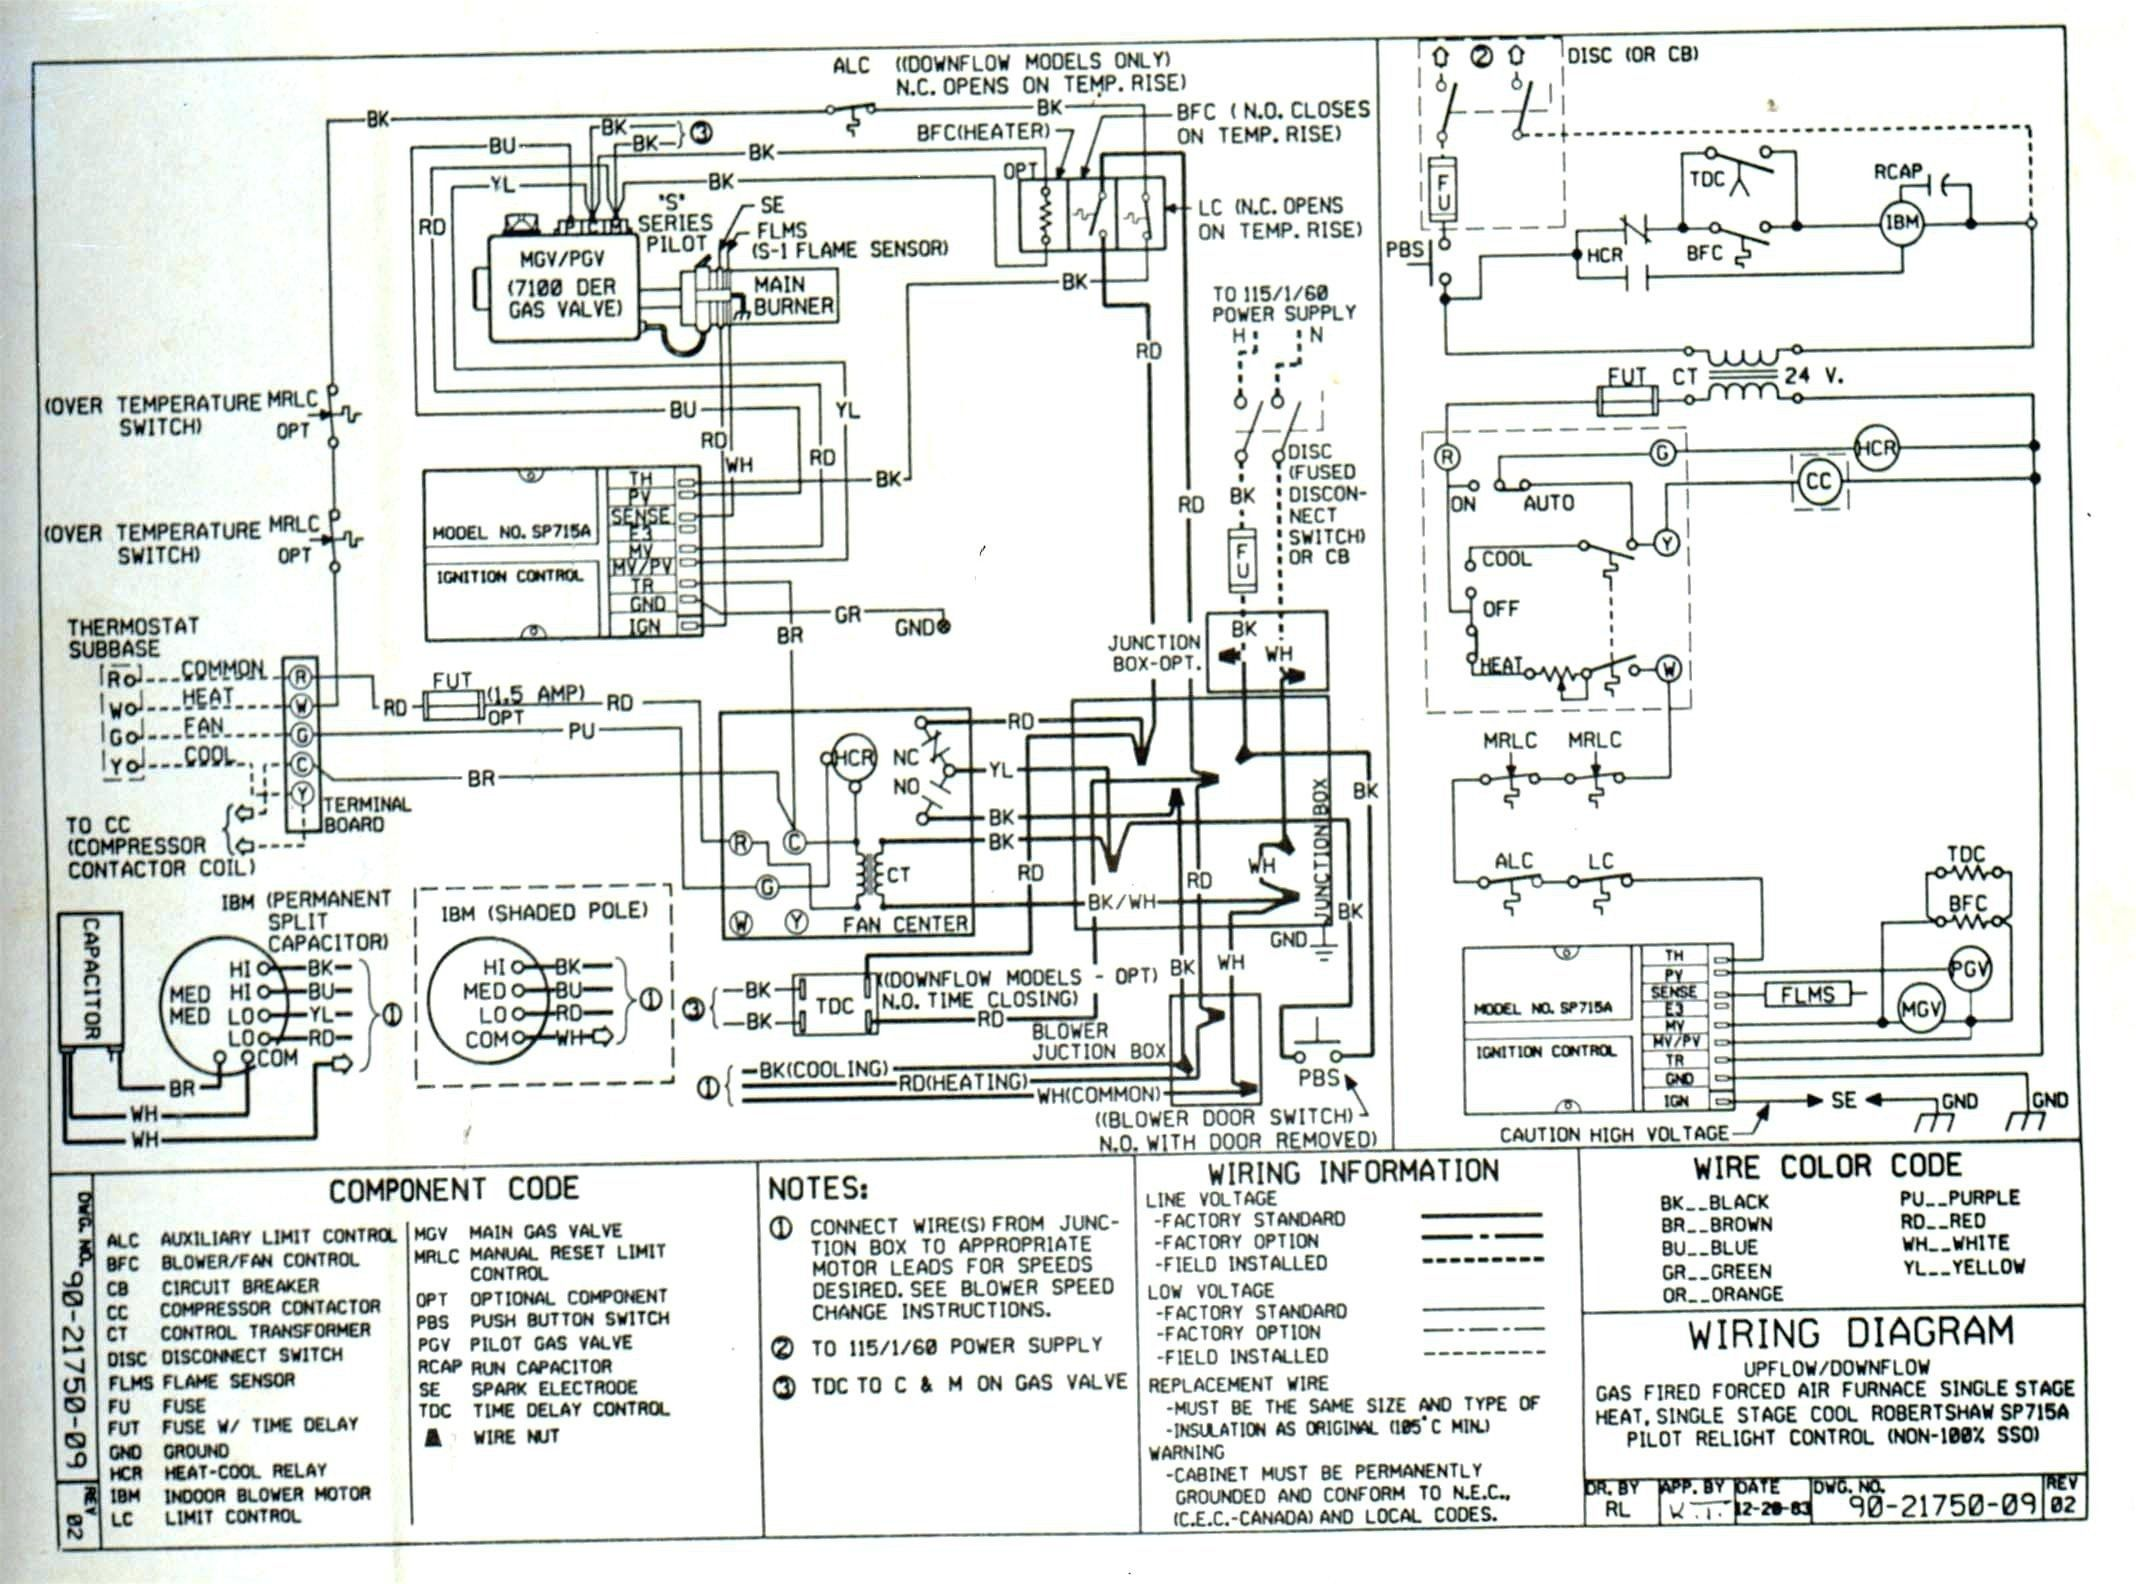 Wiring Diagram For S Plan Heating System 2004 Chevy Impala Stereo Trane Air Handler Picture Diagrams Intended